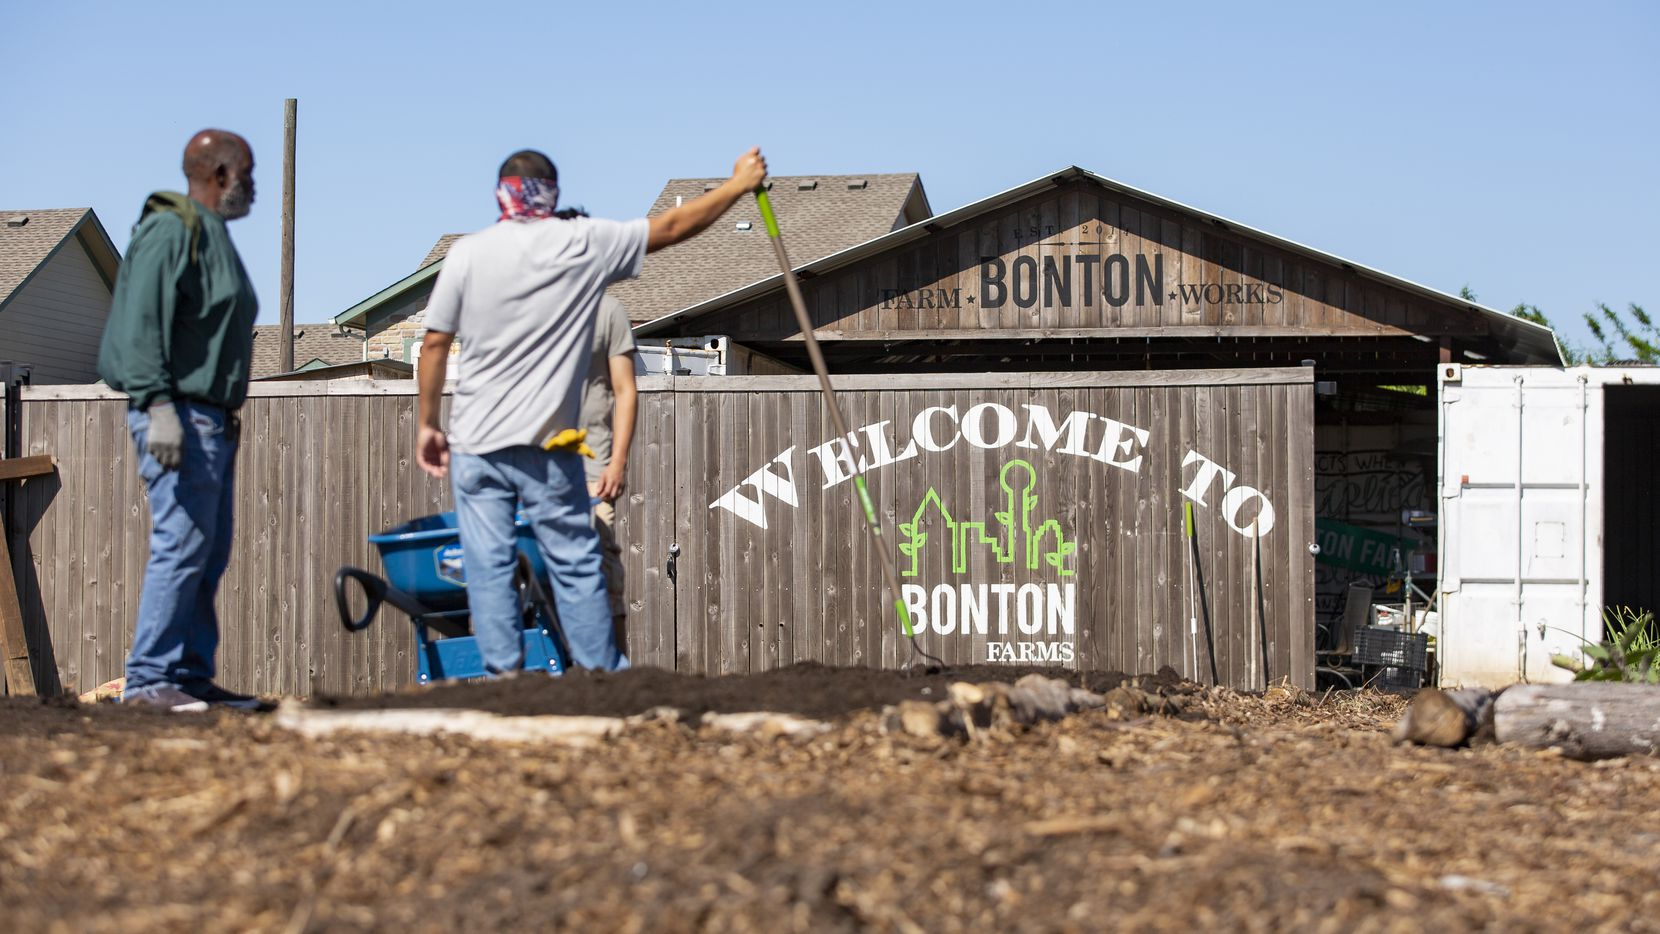 Workers outside at Bonton Farms.